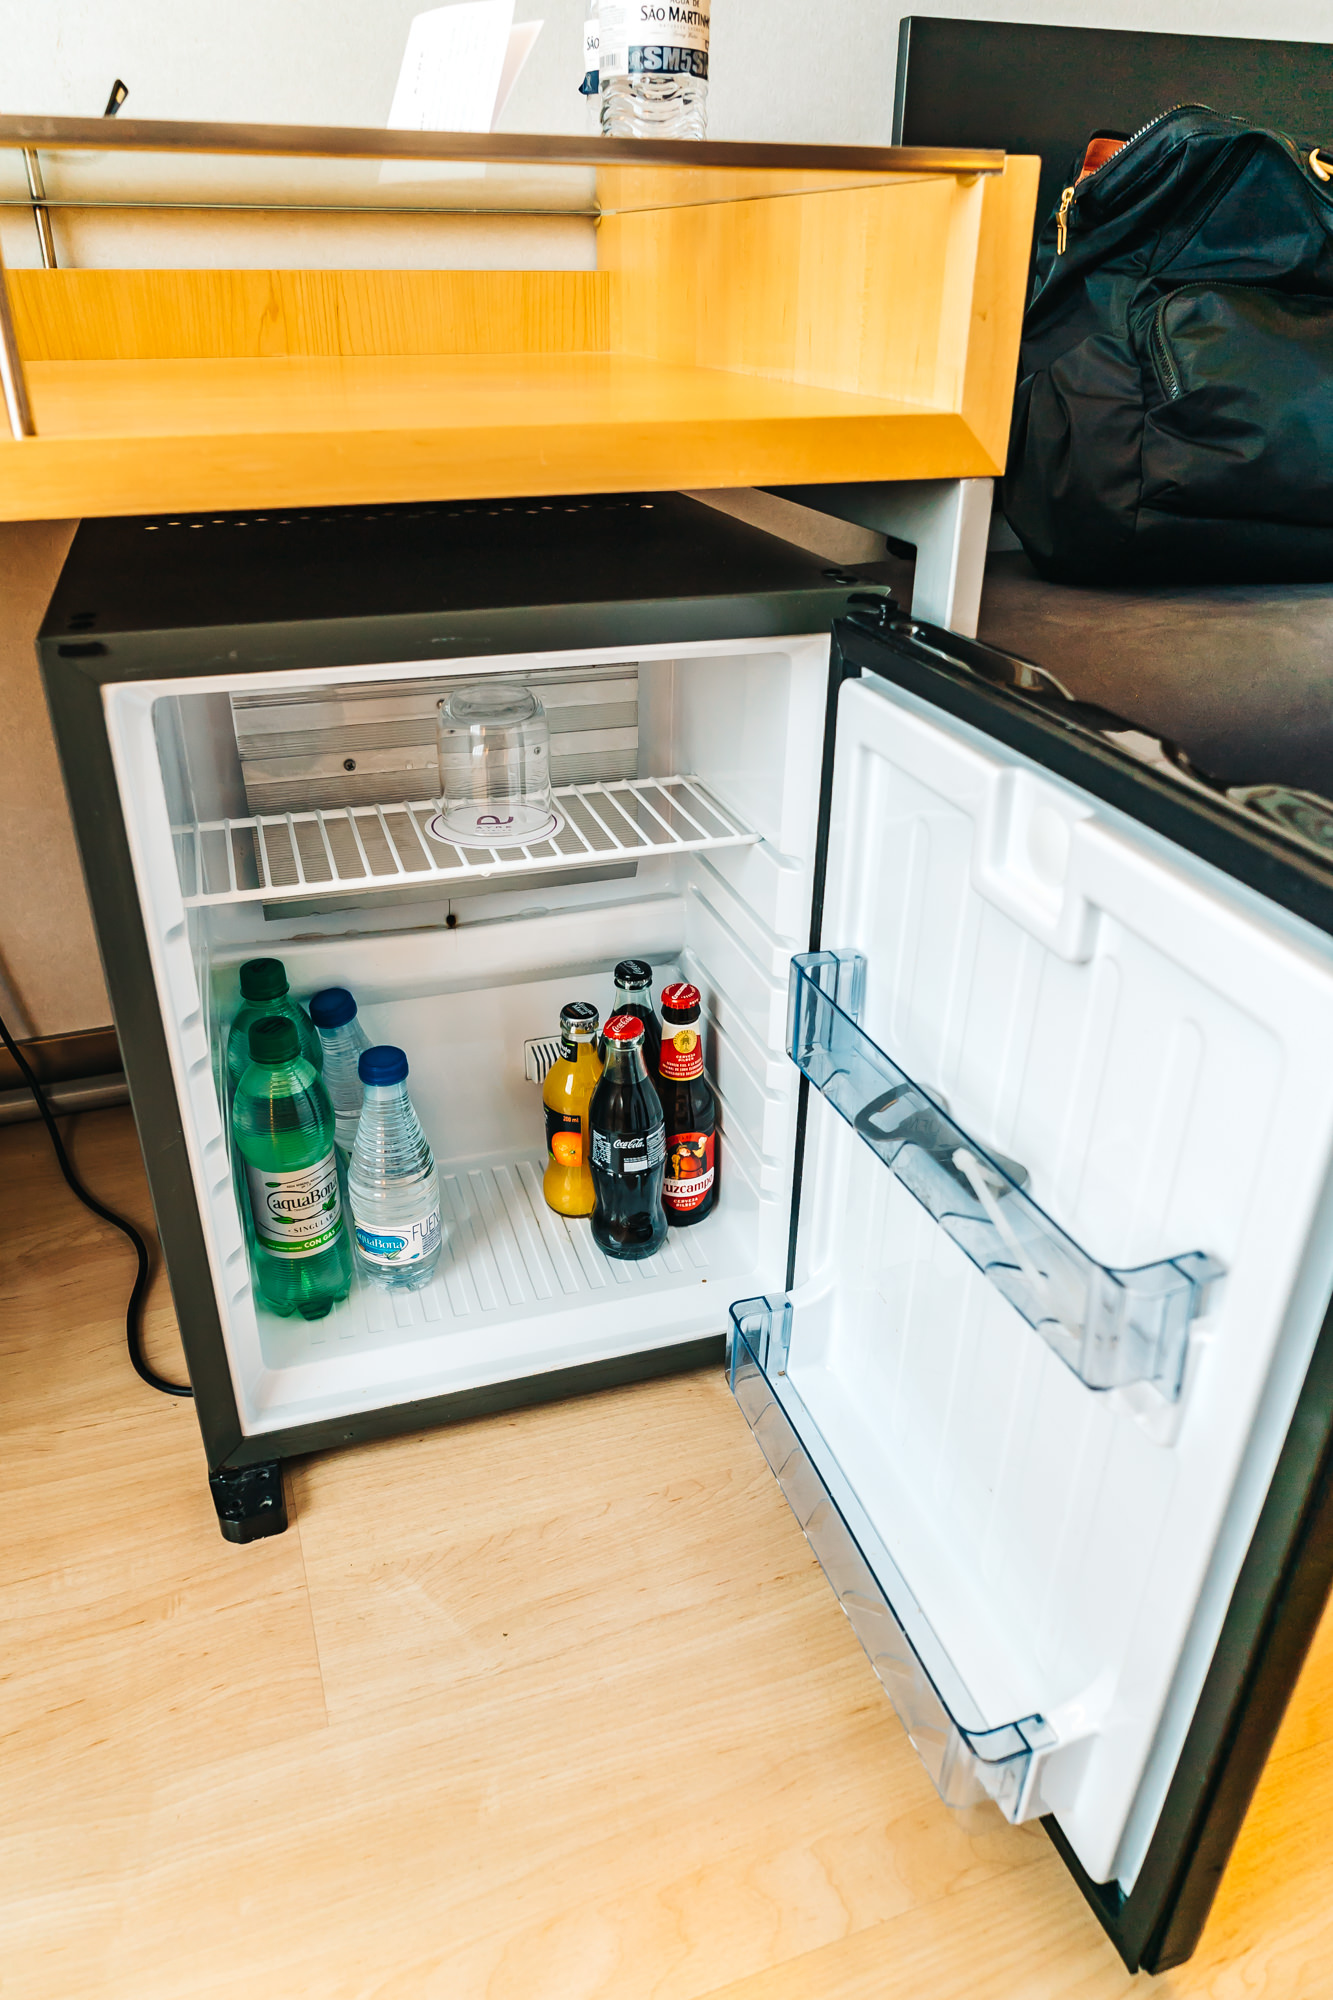 Mini fridge with bottle opener and chilled glass inside